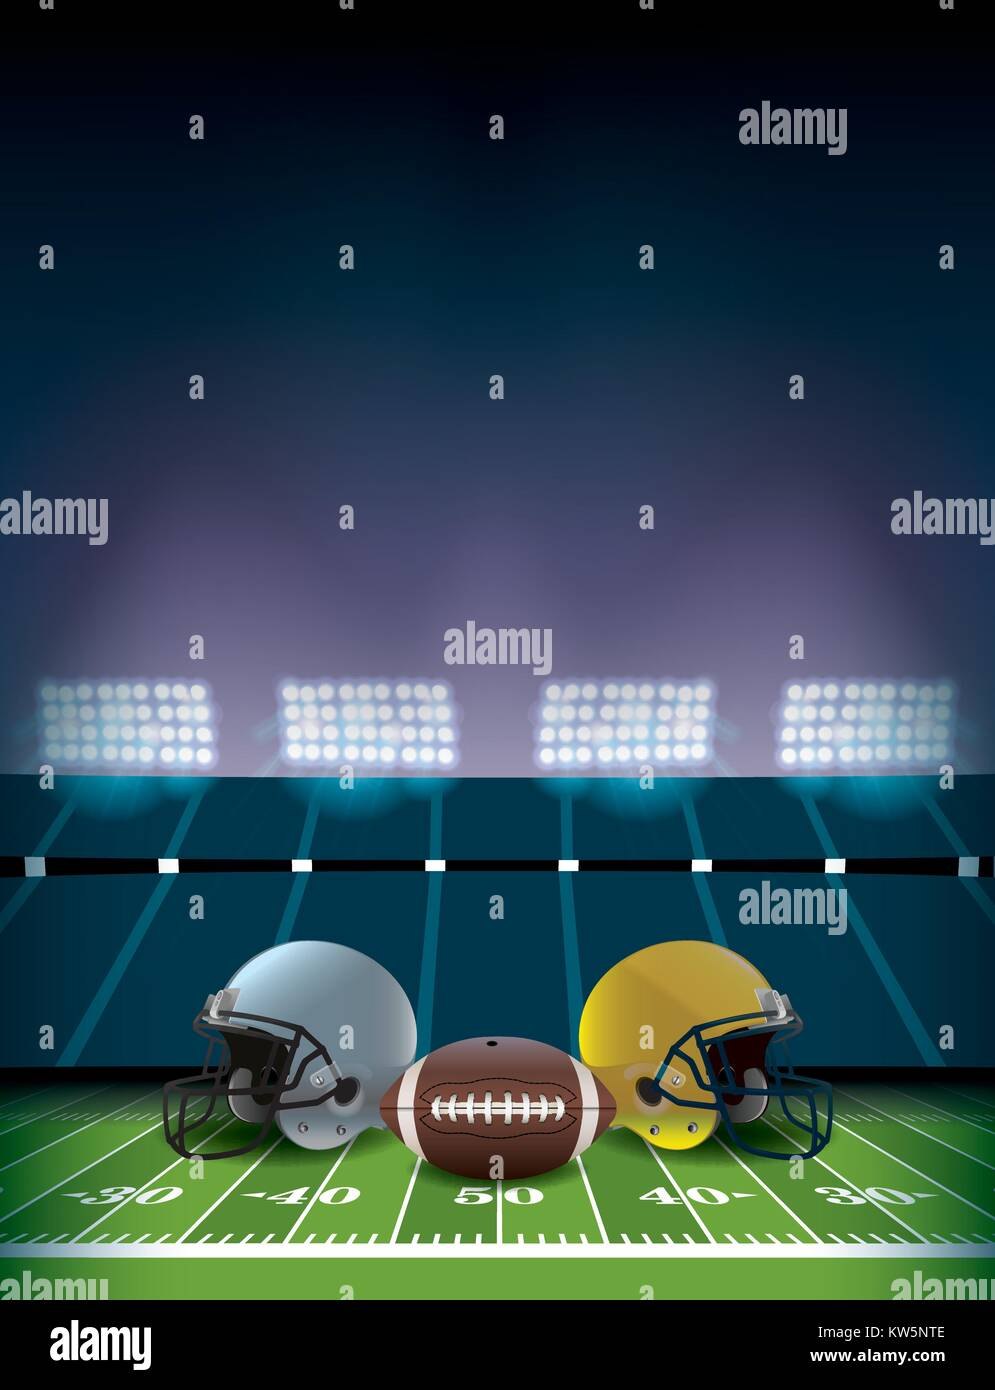 an american football stadium and field with helmets and ball stock vector image art alamy https www alamy com stock photo an american football stadium and field with helmets and ball illustration 170386622 html